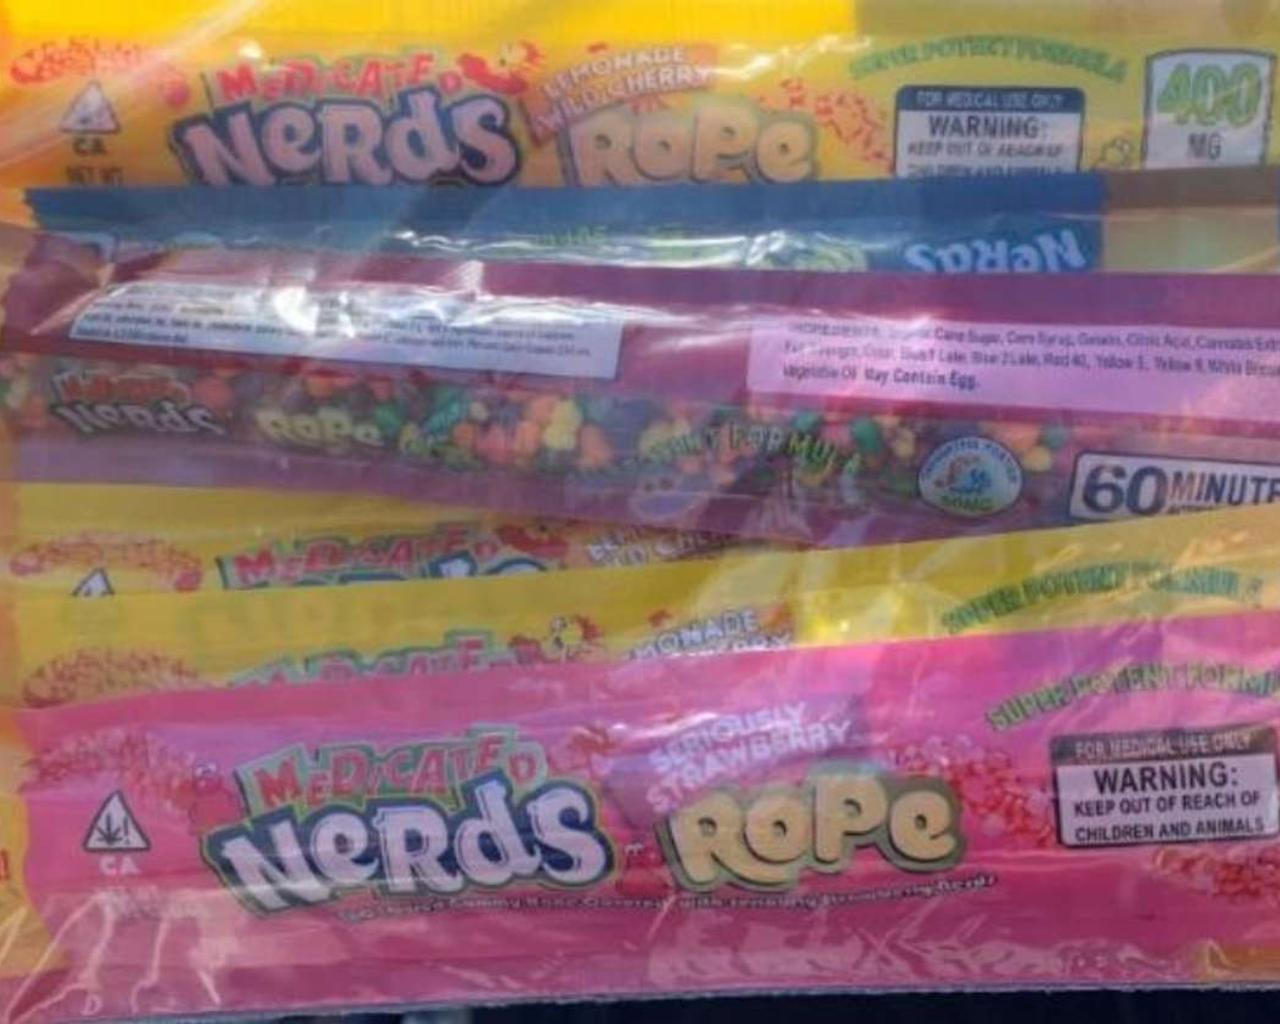 Children Hospitalized After Eating Candy Containing THC—Acquired At A Utah Food Bank